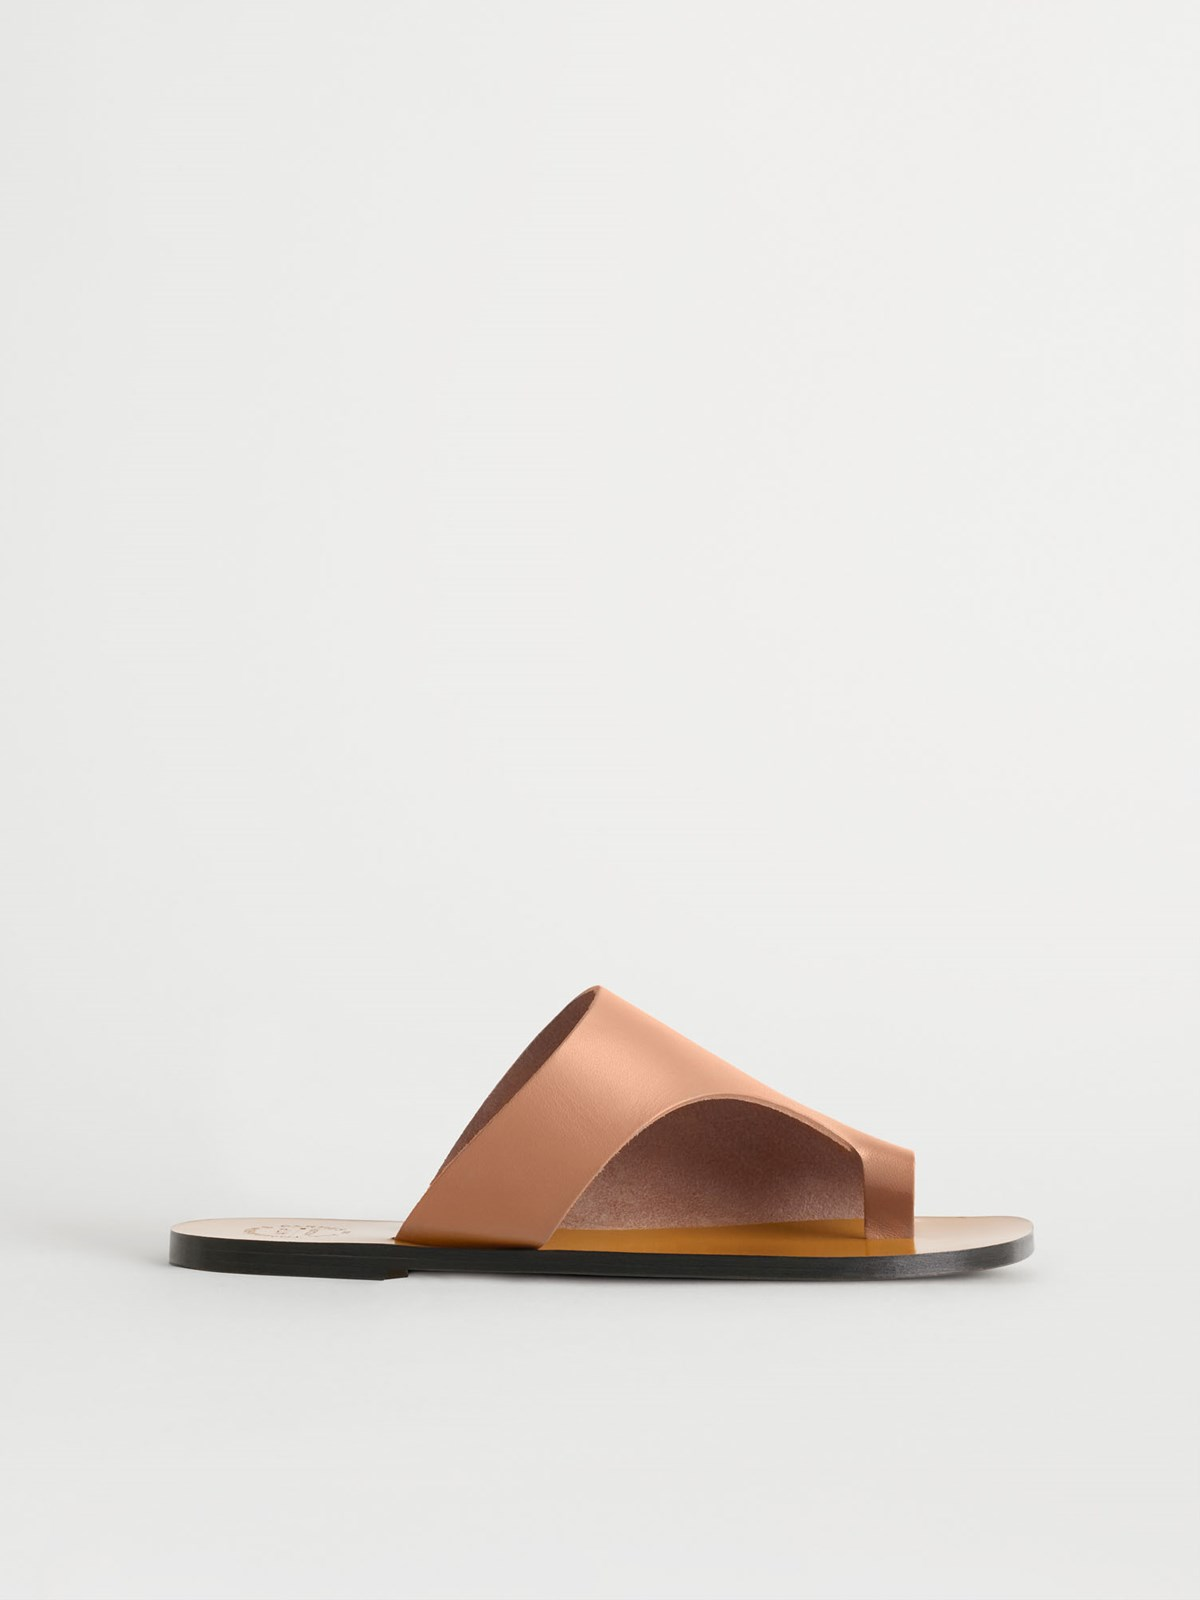 Rosa Honeynut Cutout sandals